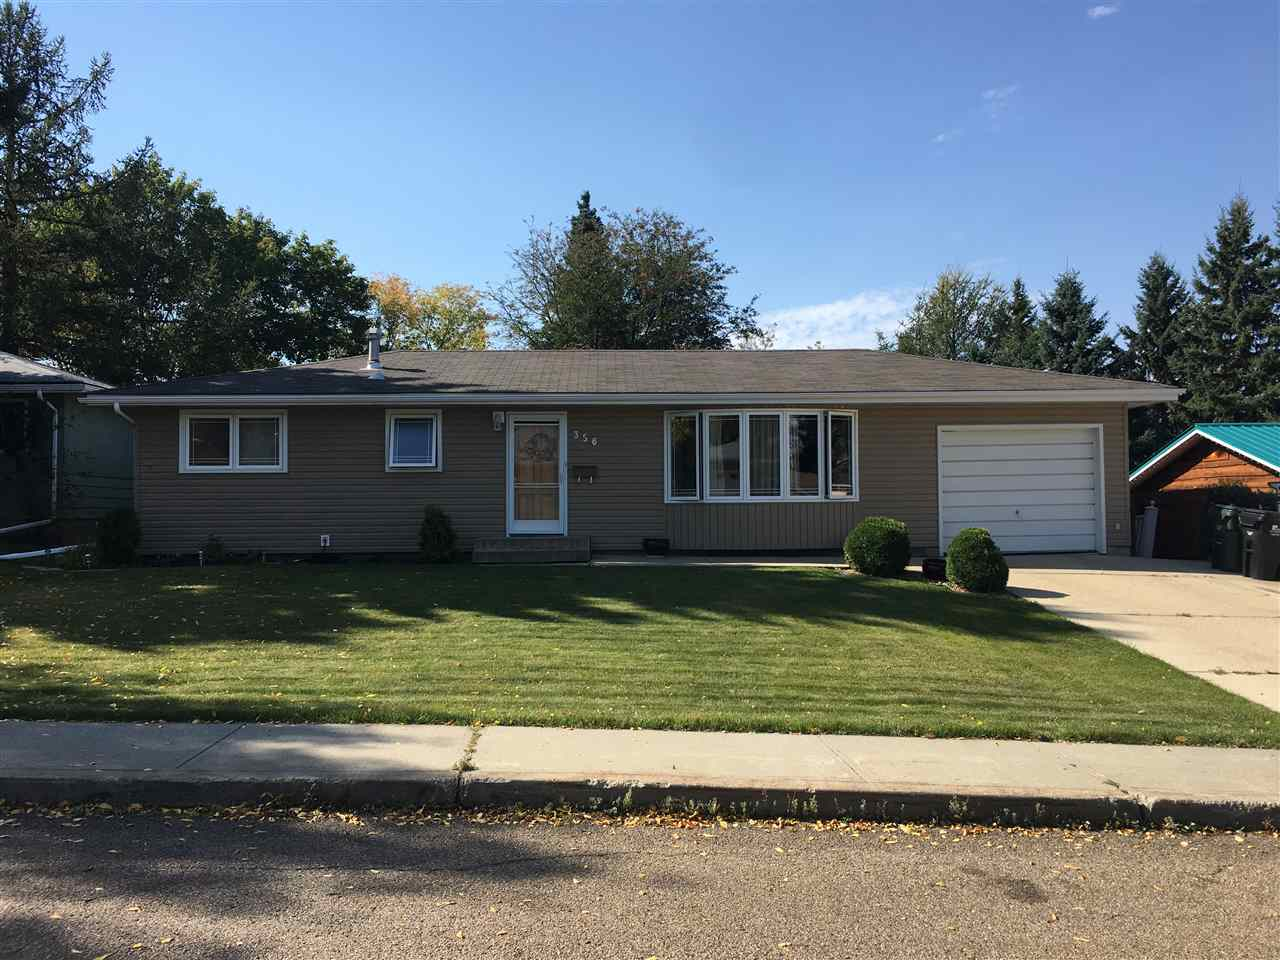 356 WILLOW Street, 3 bed, 1 bath, at $359,900